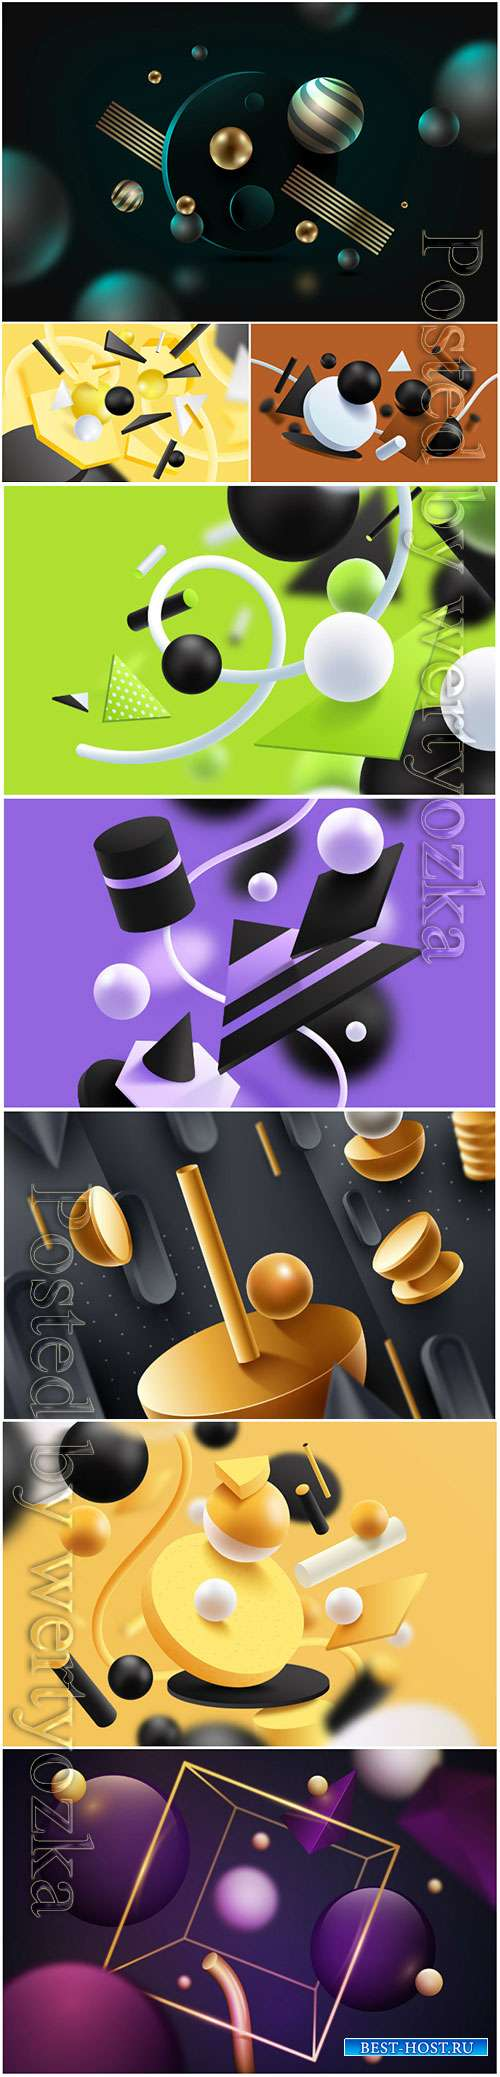 3D models template background with colorful shapes